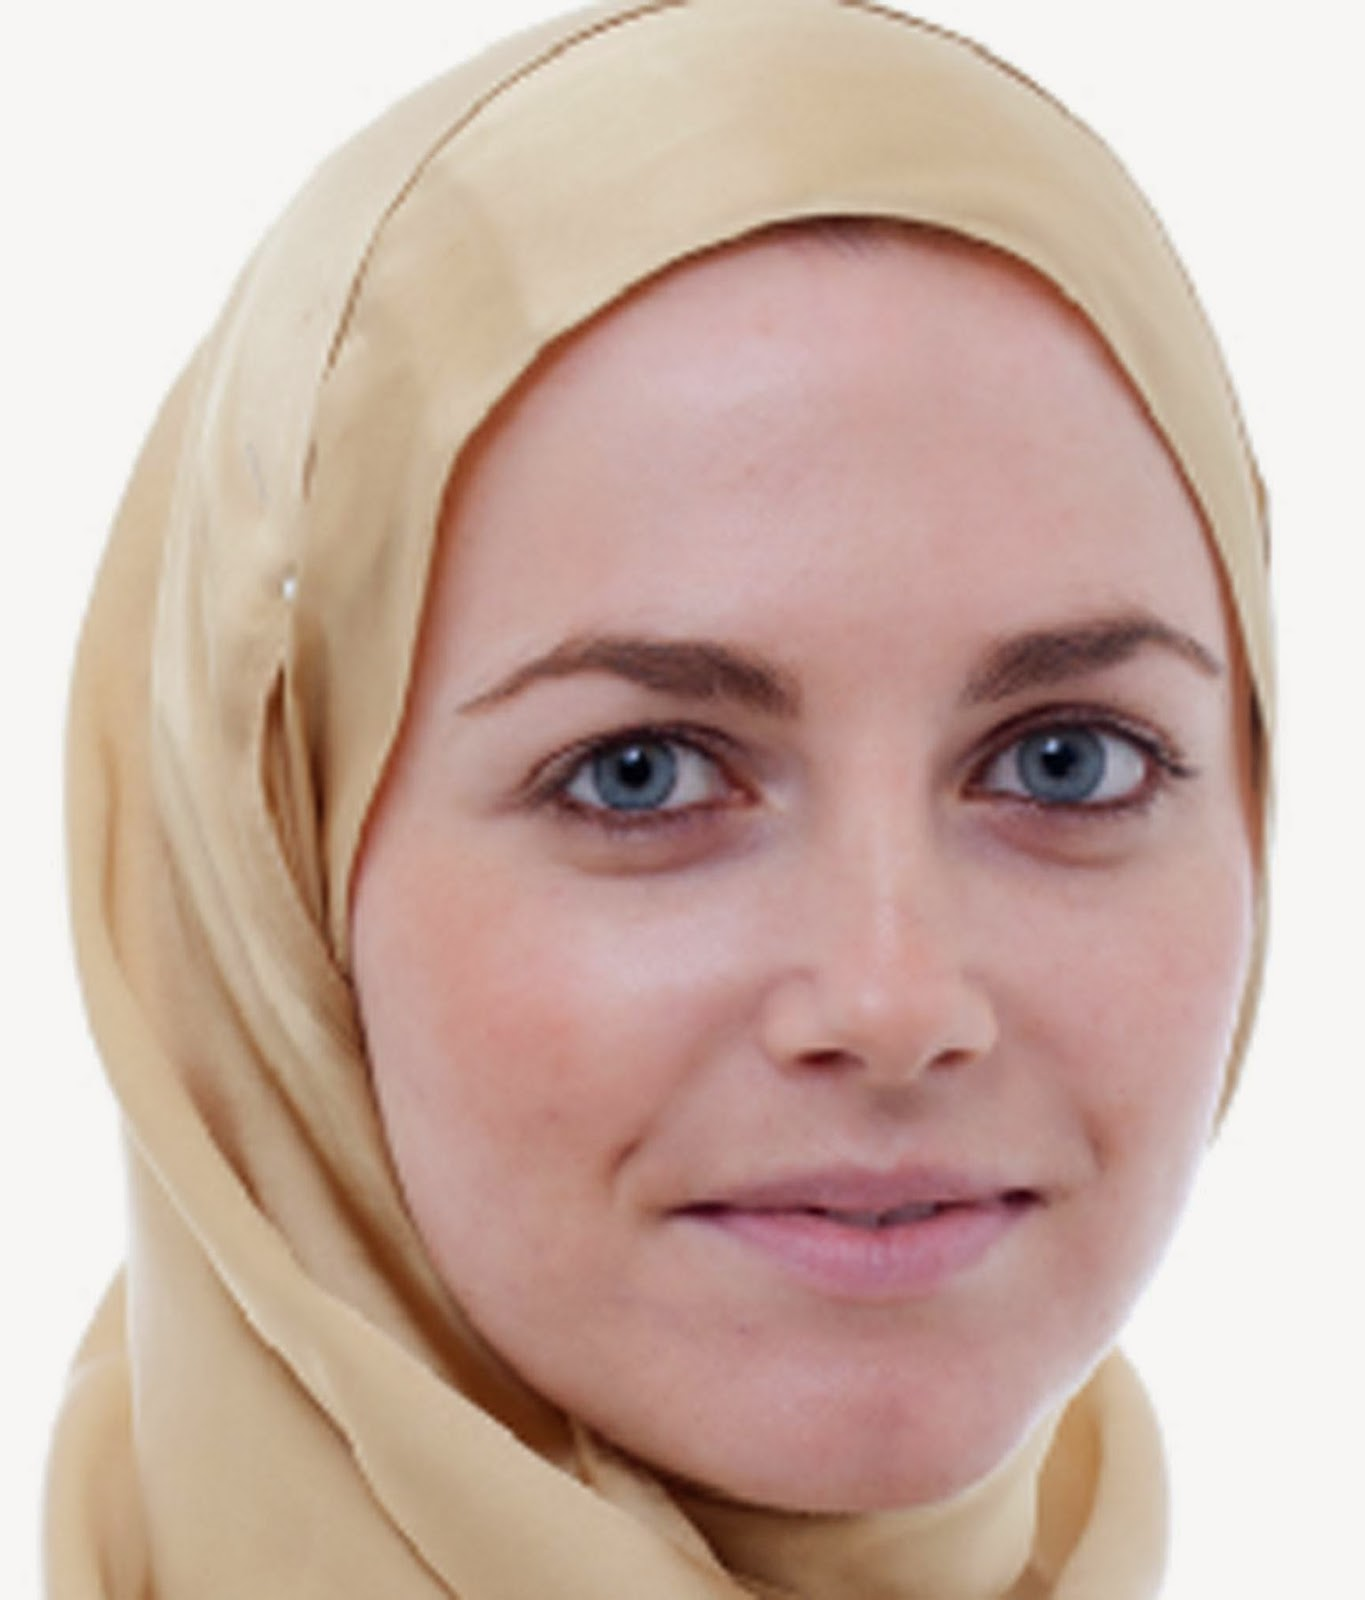 keauhou muslim single women American muslim dating welcome to lovehabibi - the online meeting place for people looking for american muslim dating whether you're looking to just meet new people in or possibly something.